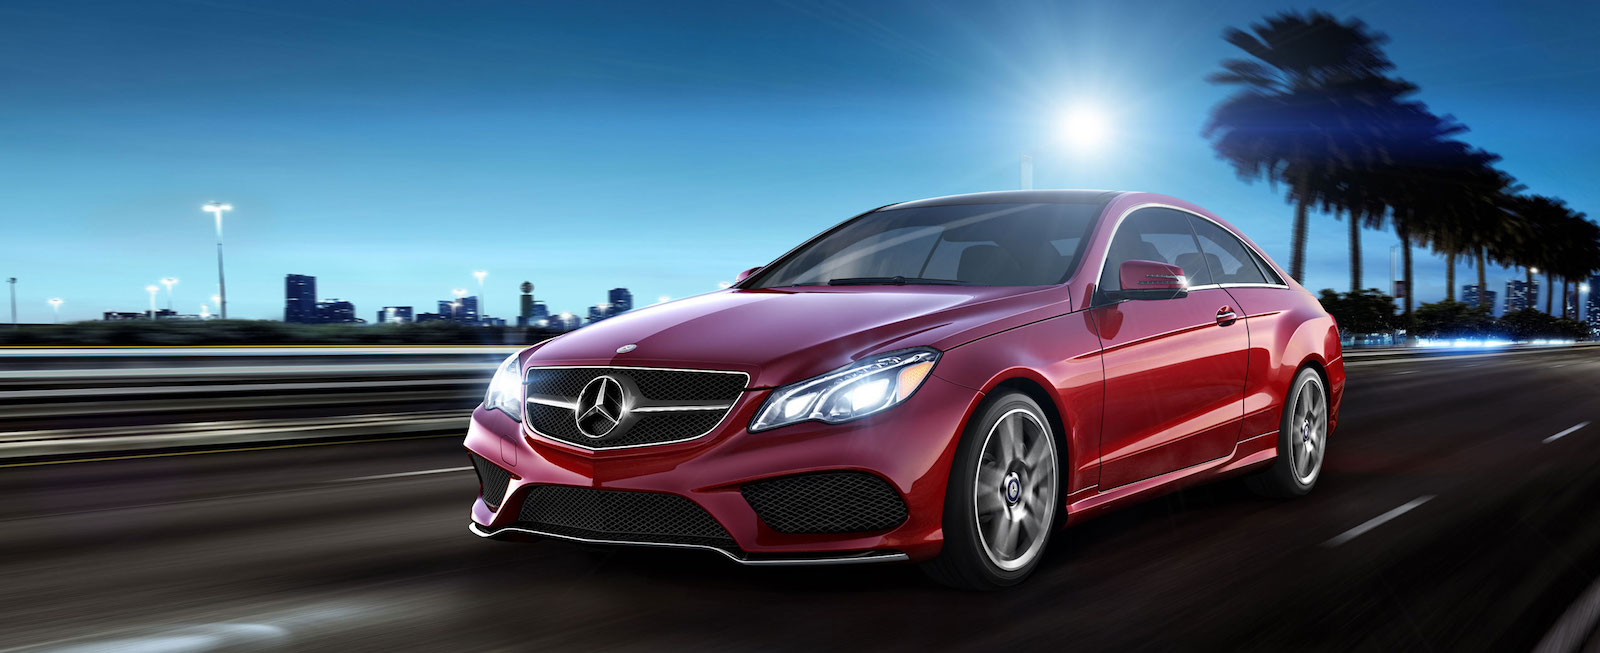 Nothing can compare to a certified pre owned mercedes from for Mercedes benz foothill ranch service specials